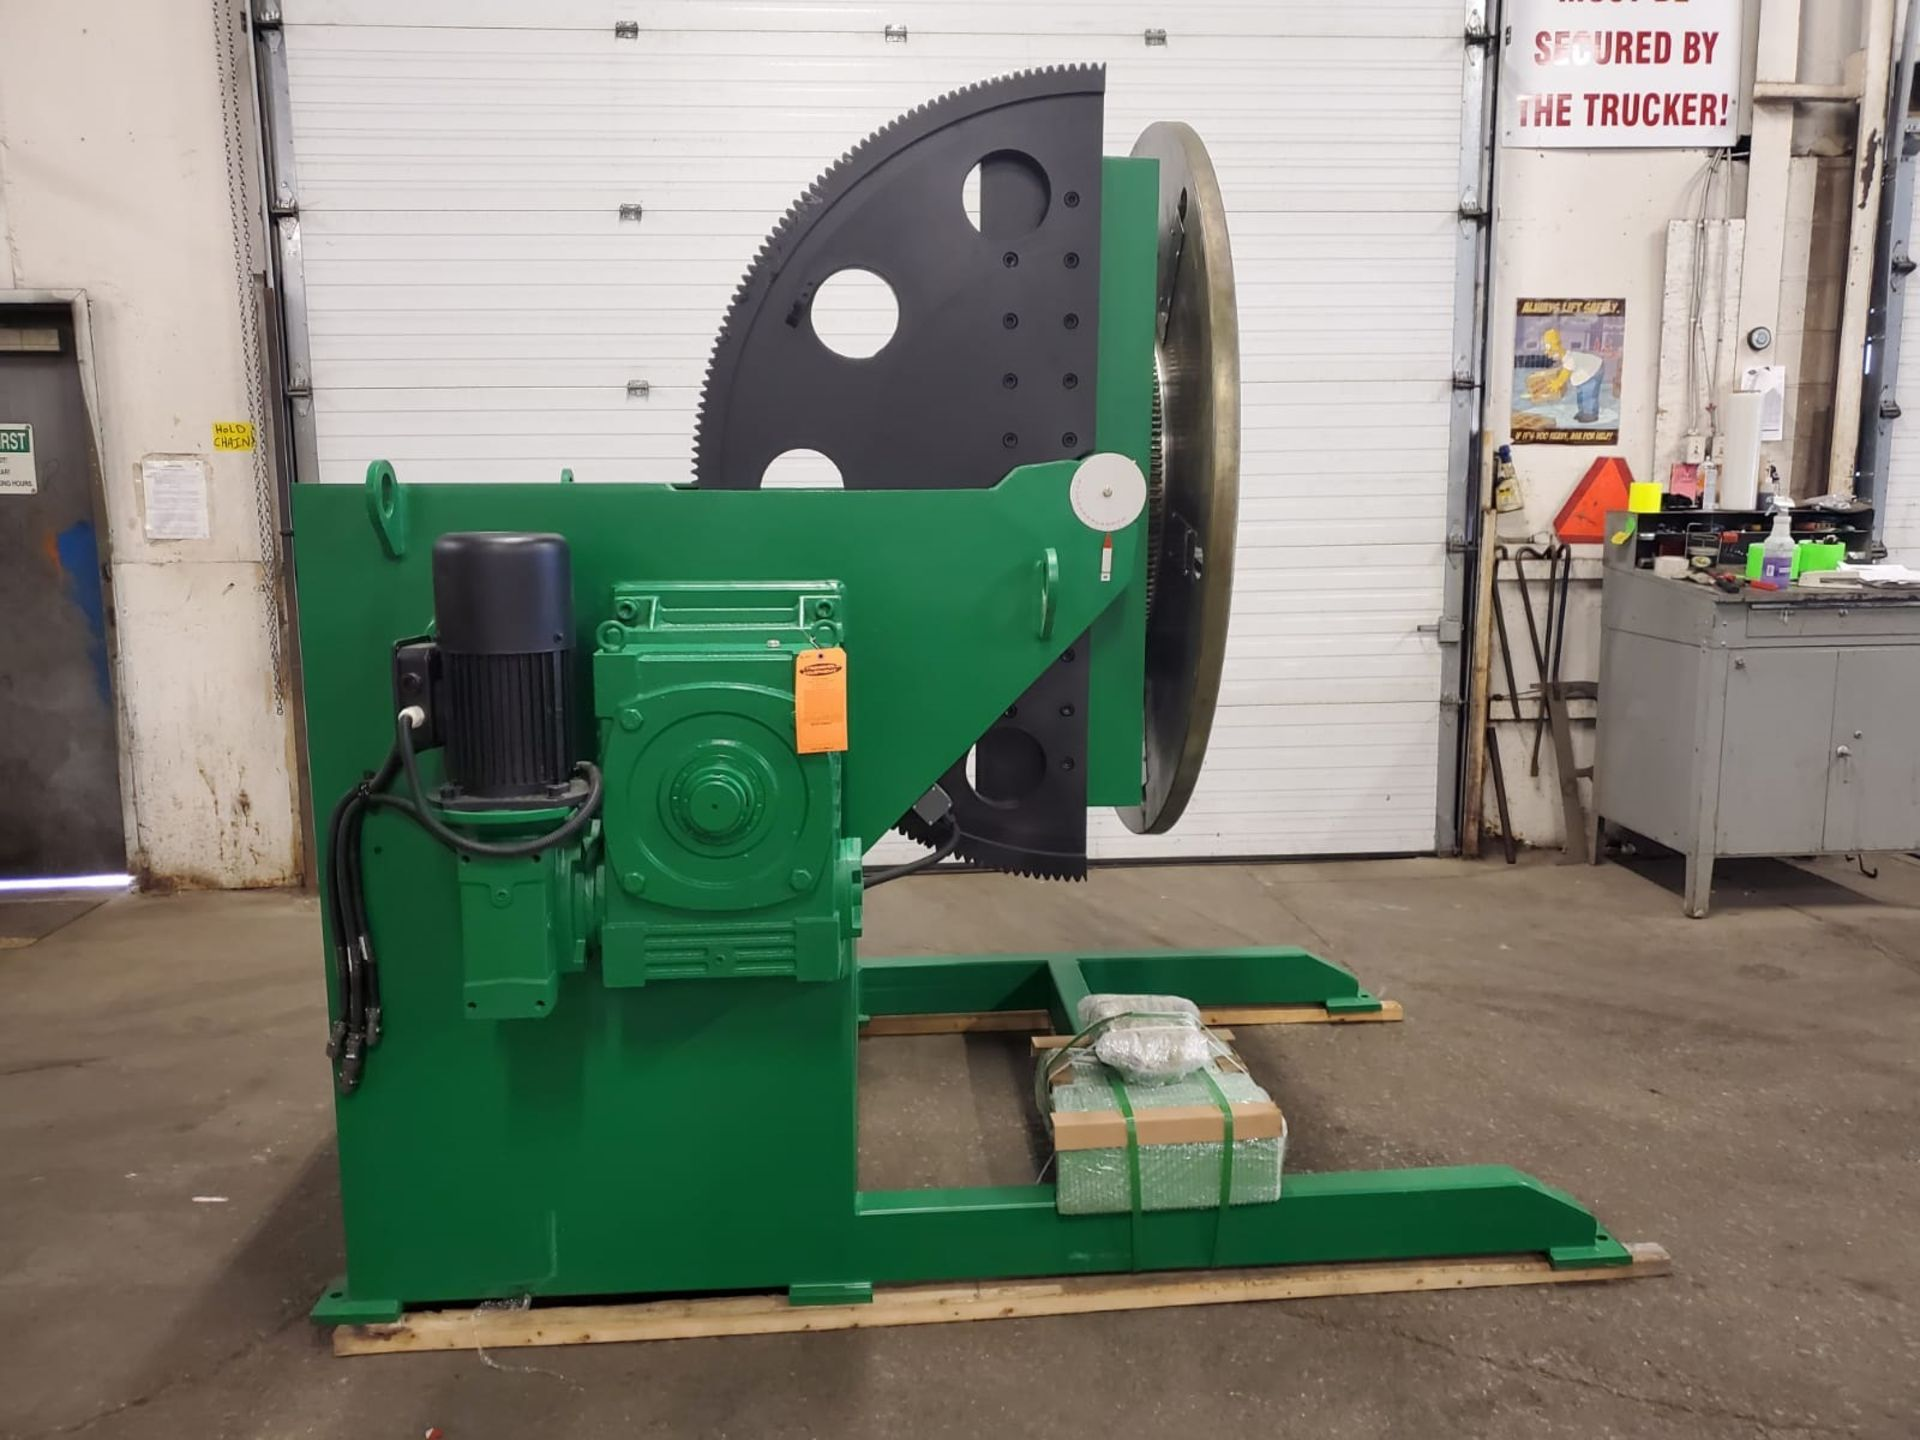 Verner model VD-12000 WELDING POSITIONER 12000lbs capacity - tilt and rotate with variable speed